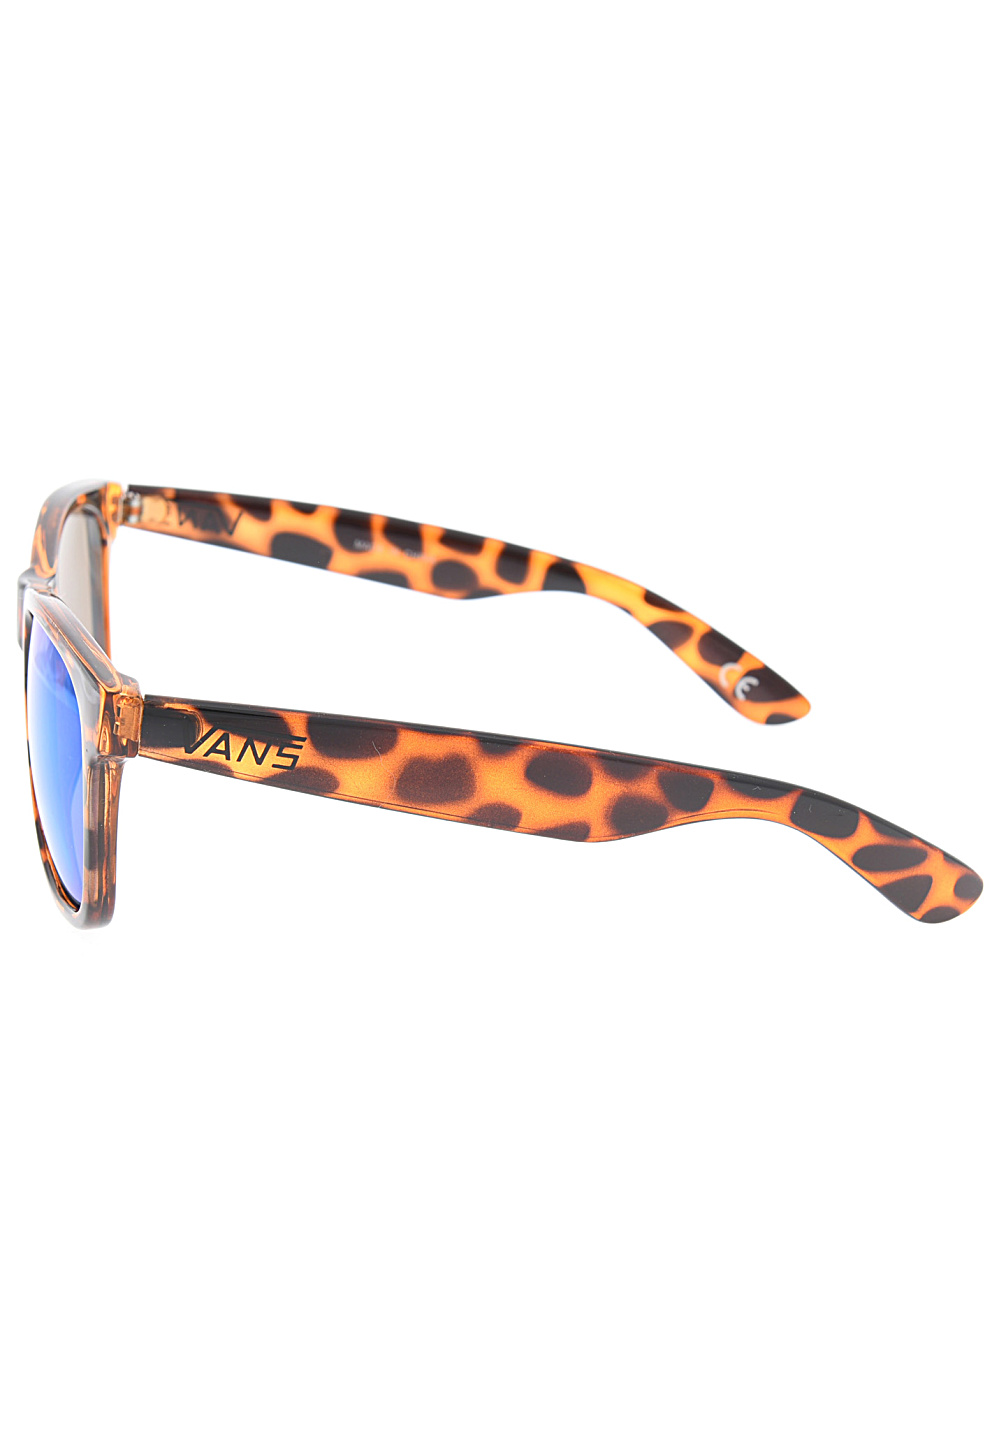 515fb0a774 ... Vans Spicoli 4 Shades - Sunglasses for Men - Brown. Back to Overview.  1  2  3. Previous. Next